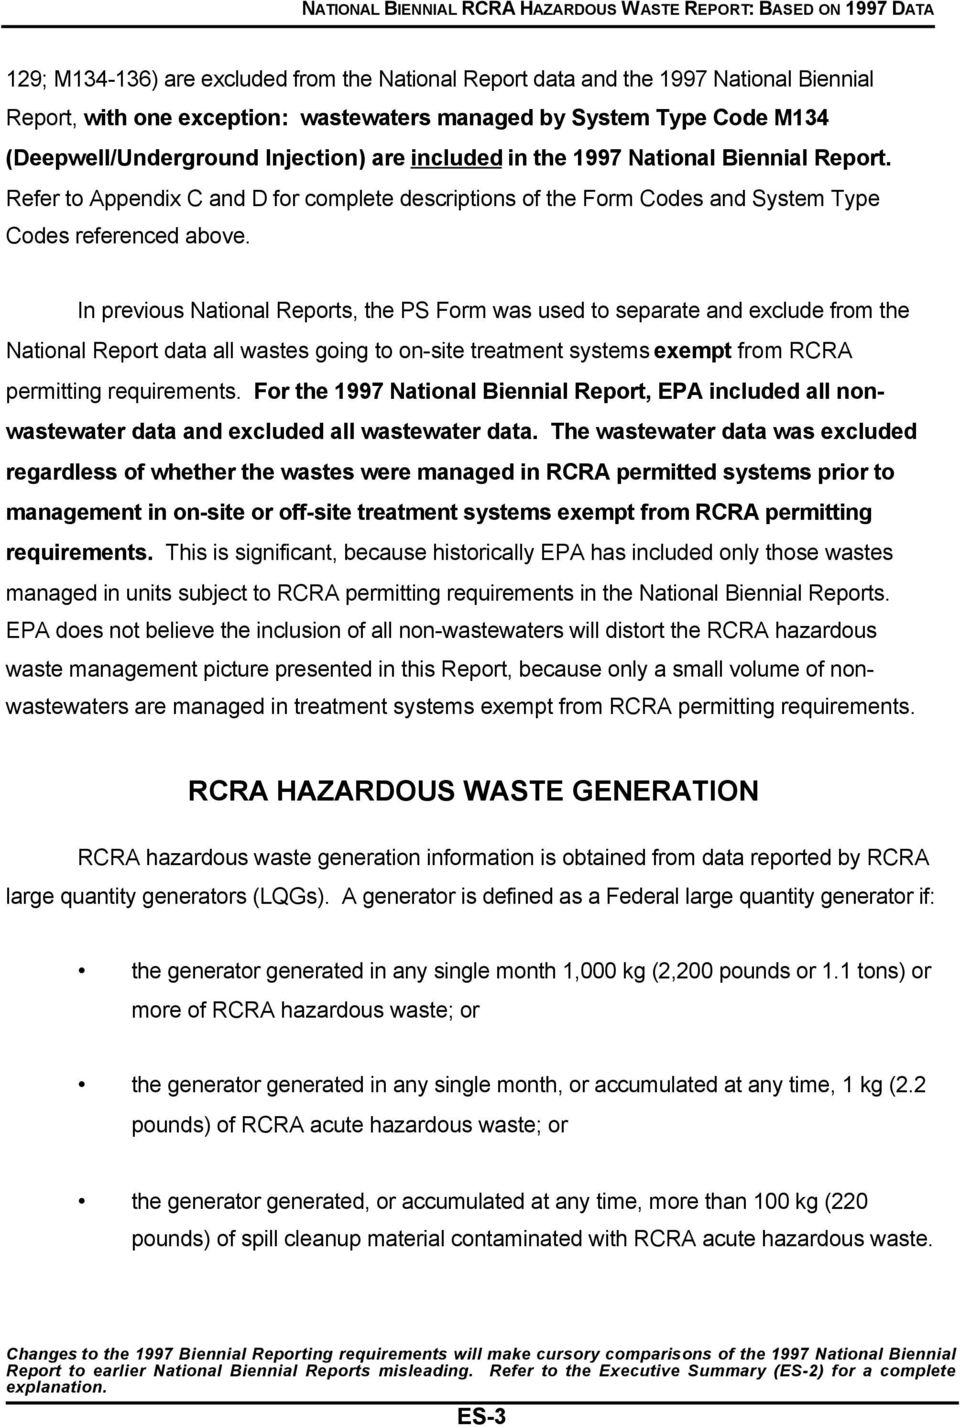 In previous National Reports, the PS Form was used to separate and exclude from the National Report data all wastes going to on-site treatment systems exempt from RCRA permitting requirements.